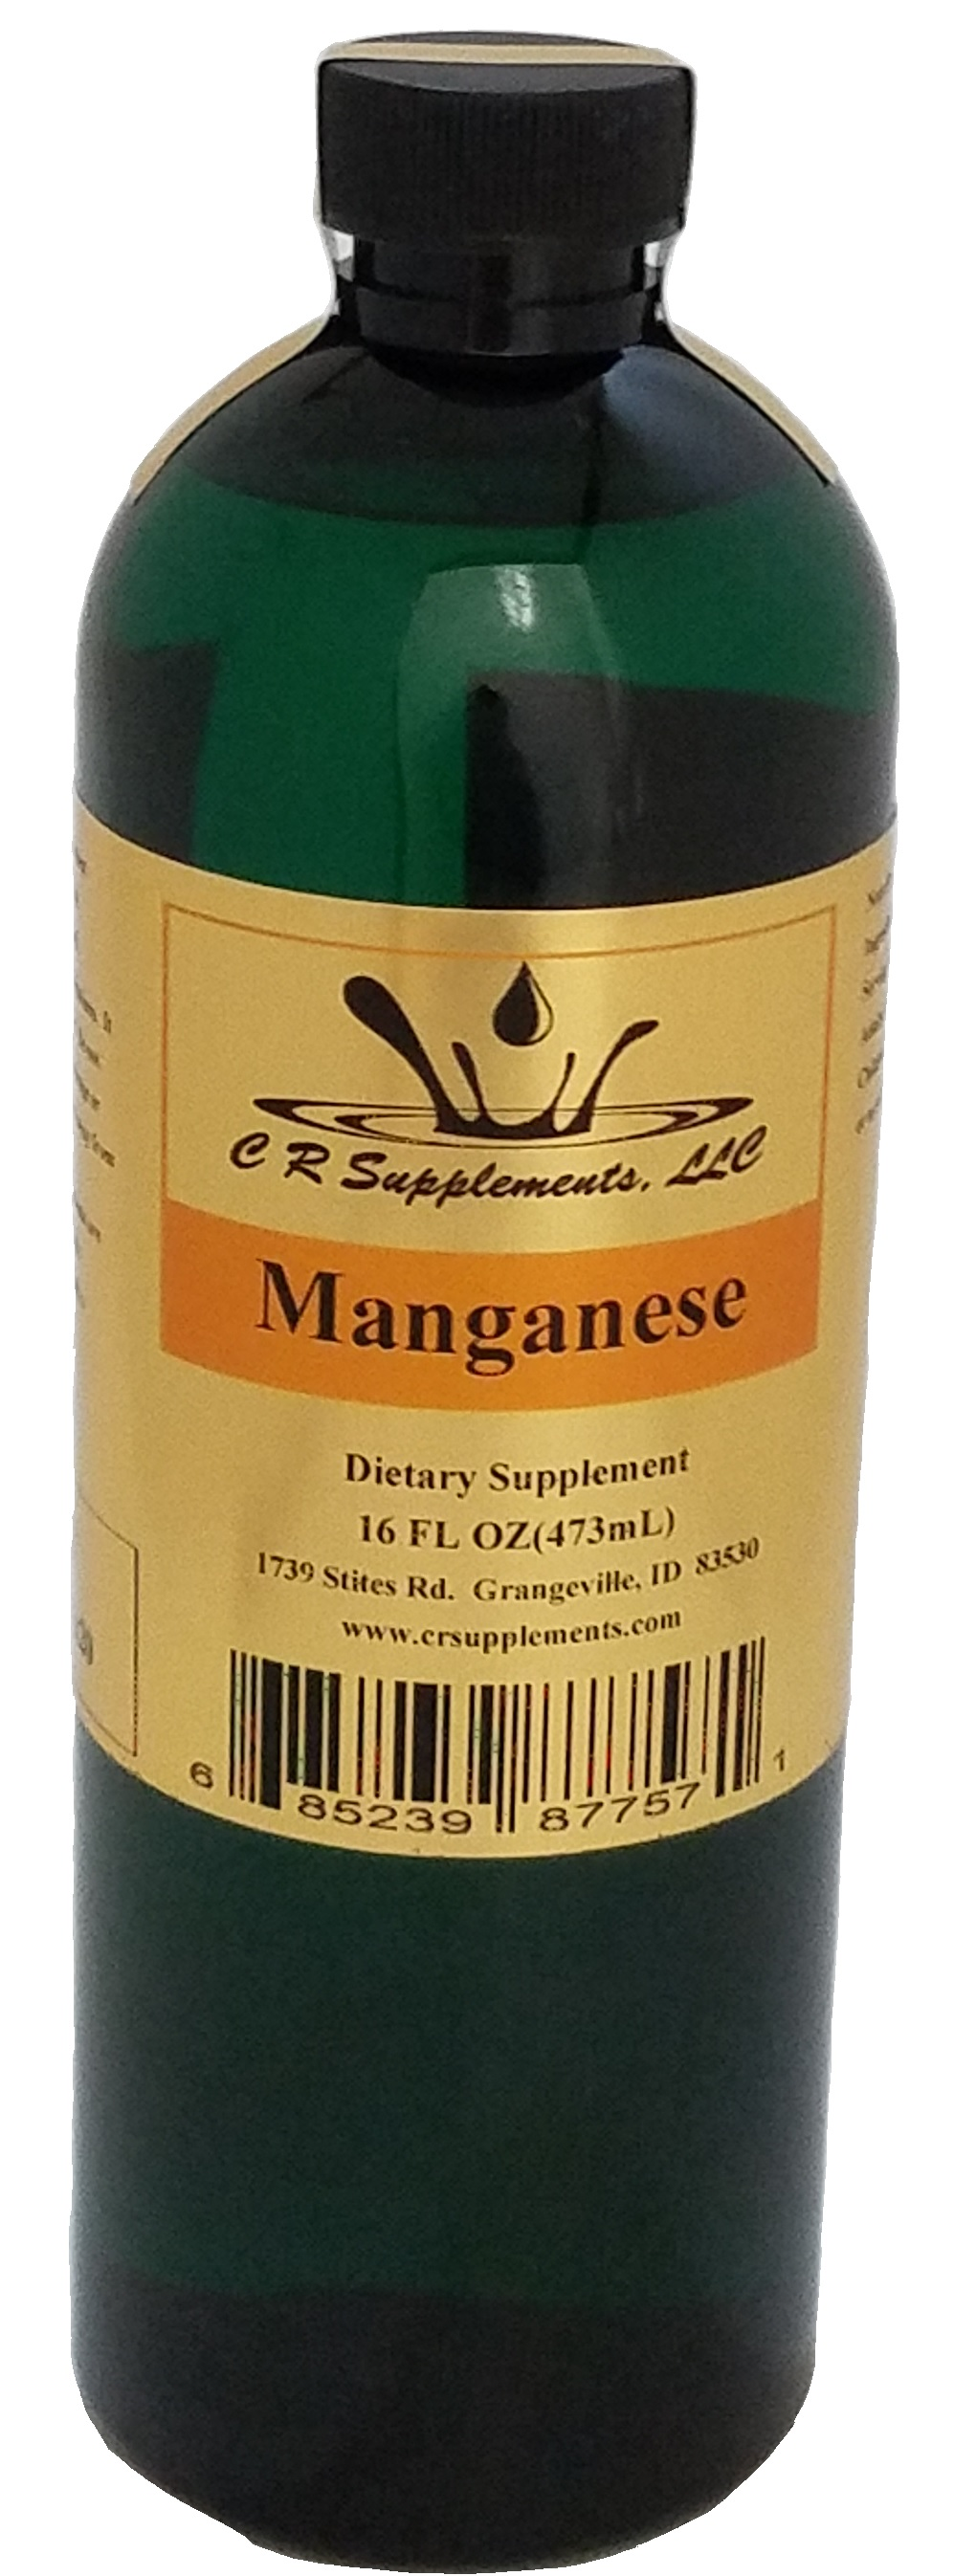 Manganese Dietary Supplement, Manganese, WaterOz Manganese Replacement, Liquid dietary supplement, Kosher of America approved, KOA approved, Pareve, vegan application, elemental mineral, flexible liquid mineral, maximum absorption